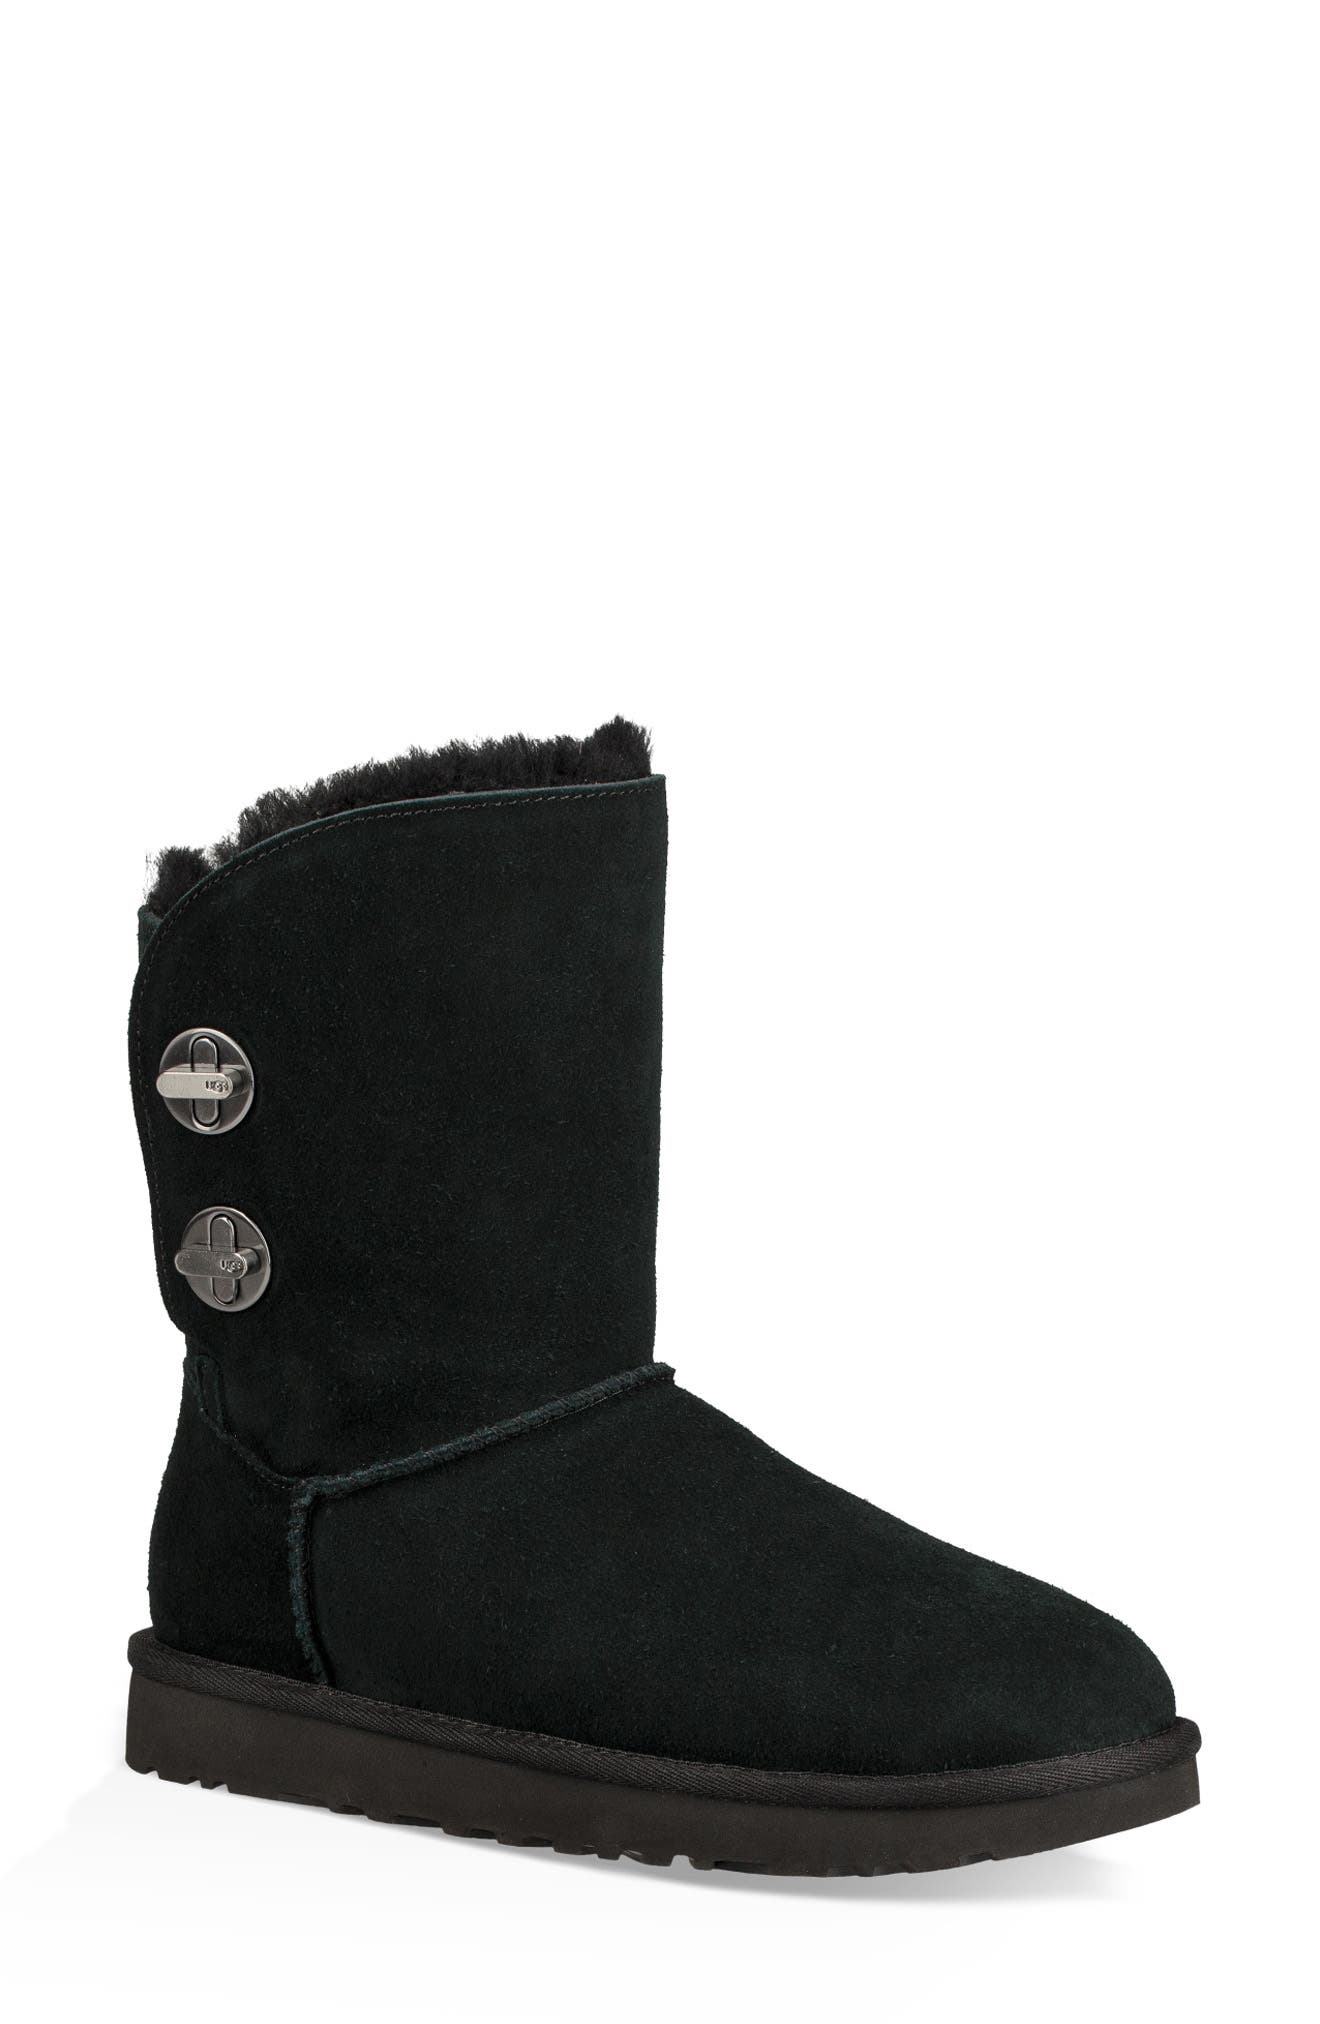 Turnlock Bootie,                             Main thumbnail 1, color,                             BLACK SUEDE